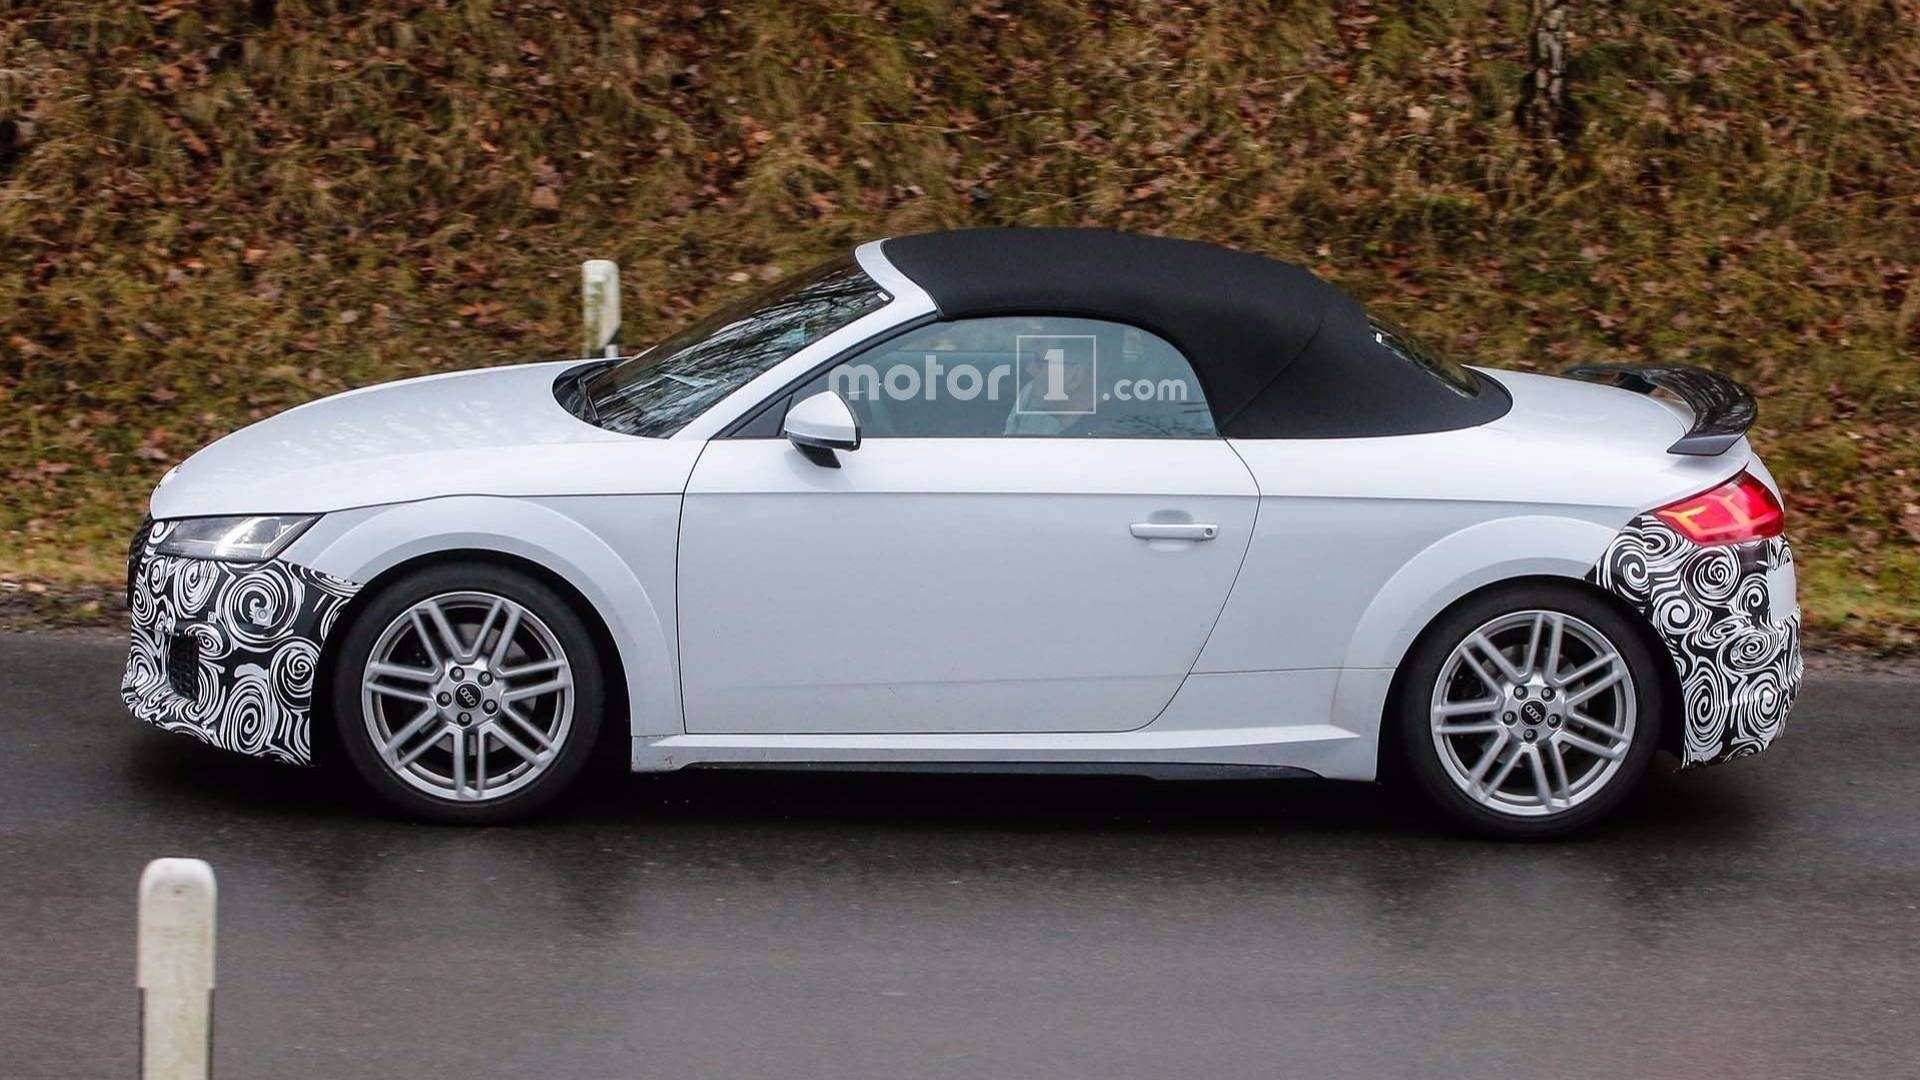 85 The 2019 Audi Tt Release Date Images for 2019 Audi Tt Release Date